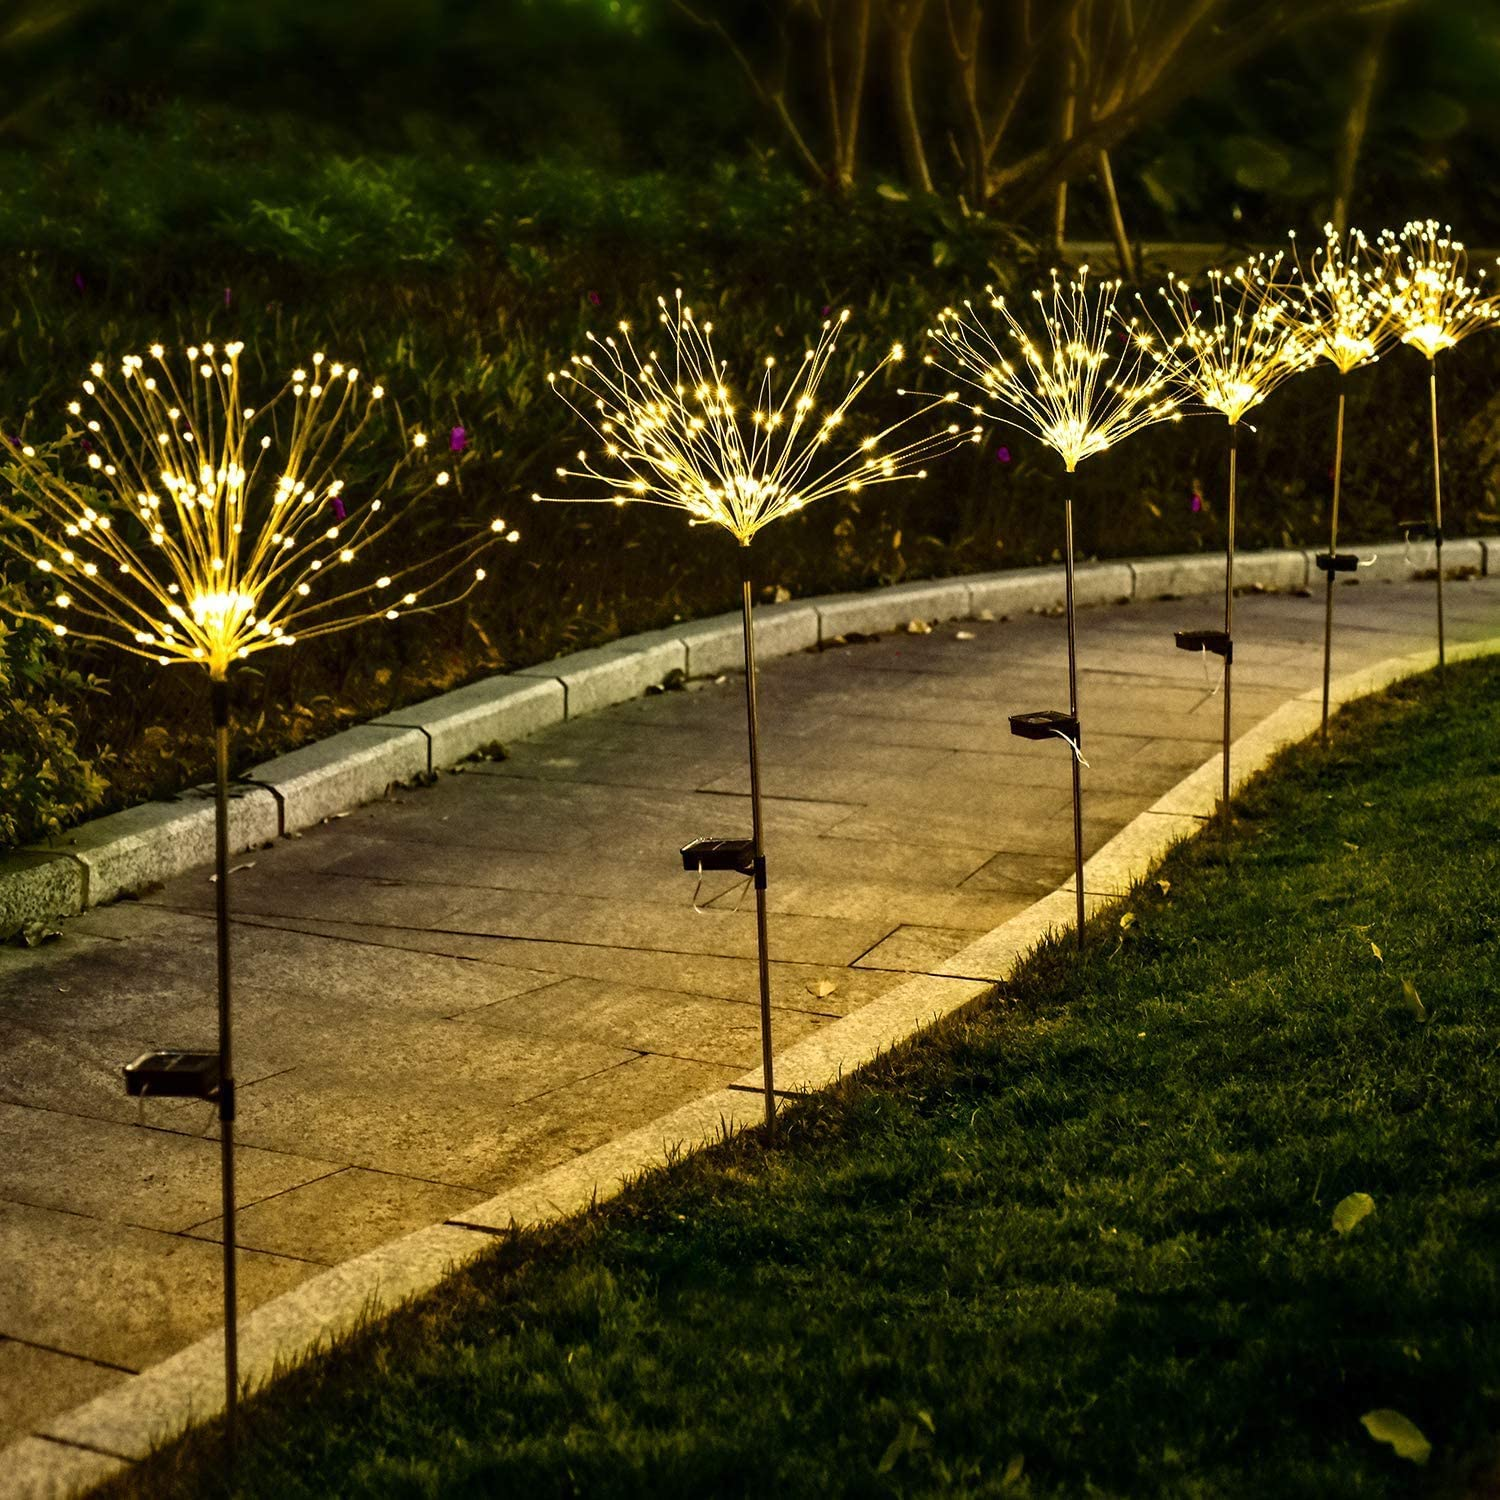 Ooklee Outdoor Solar Garden Light 1 Pc 150 Led 8 Flash Modes 50 Copper Wire String Firework Stake Starburst Fairy Lights Waterproof Diy Flower Trees For Walkway Patio Lawn Backyard Christmas Decor